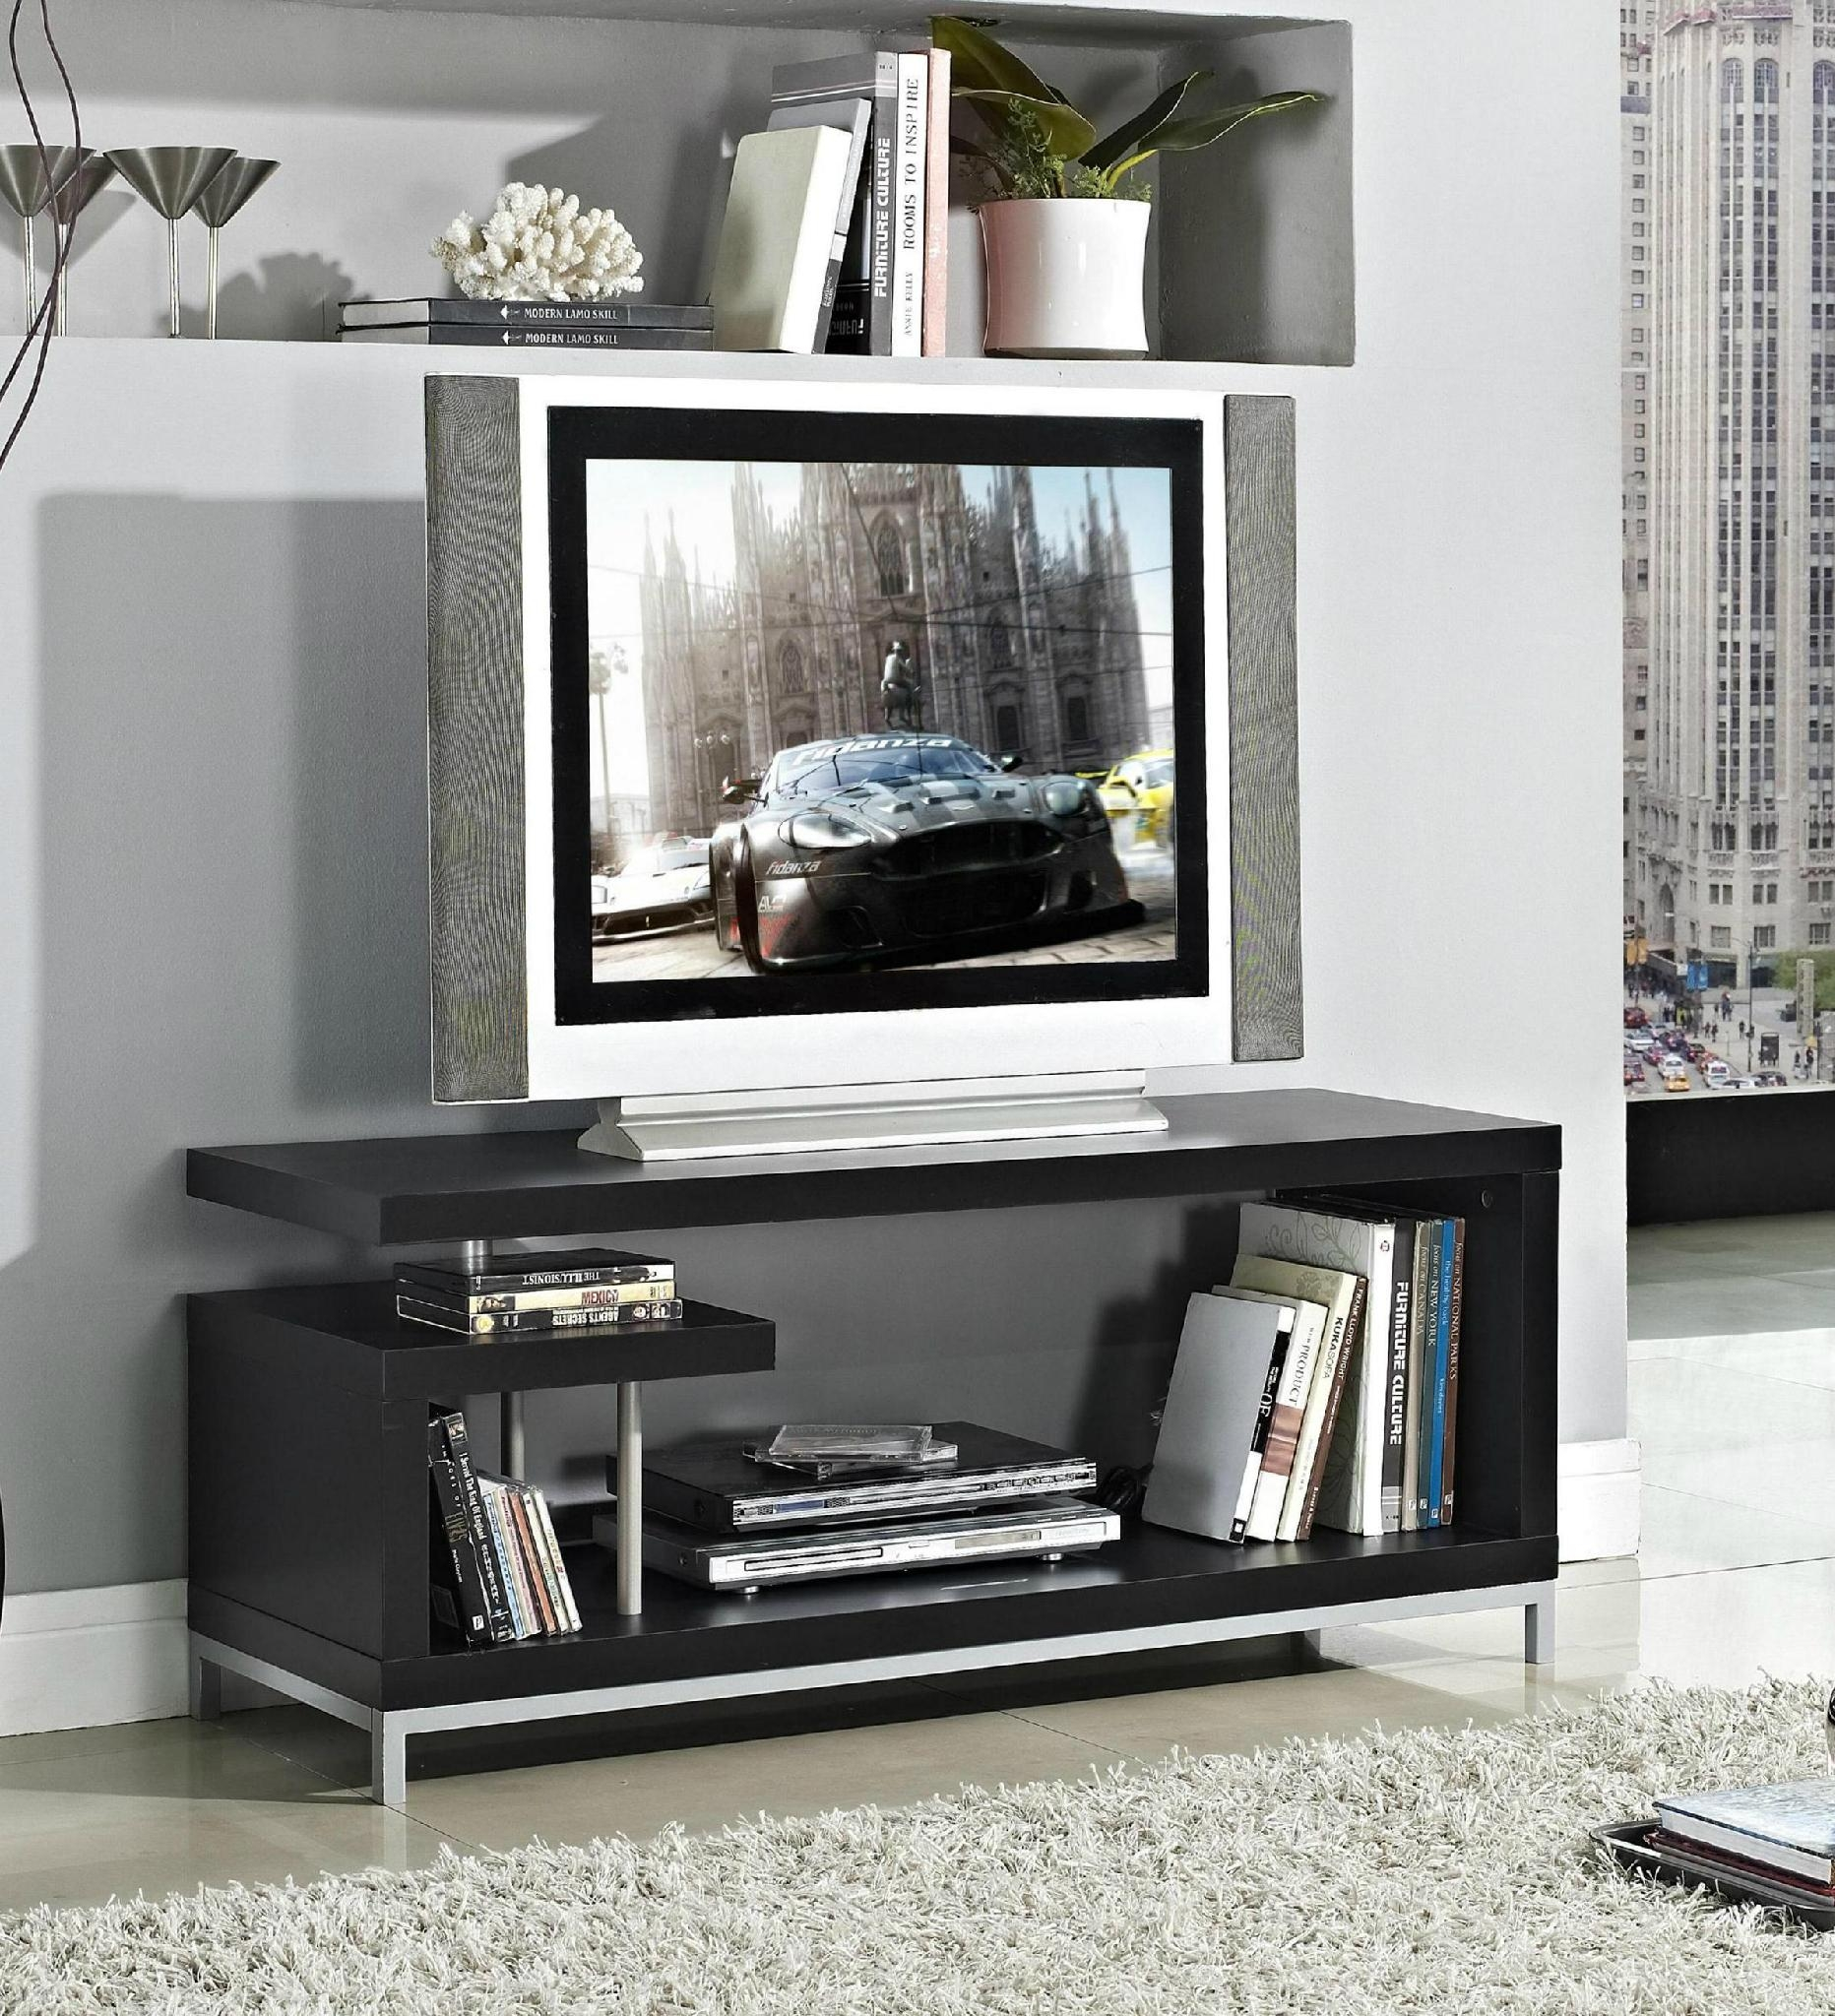 45 inch Wooden Grey Reclaimed LCD TV Table Stand 4